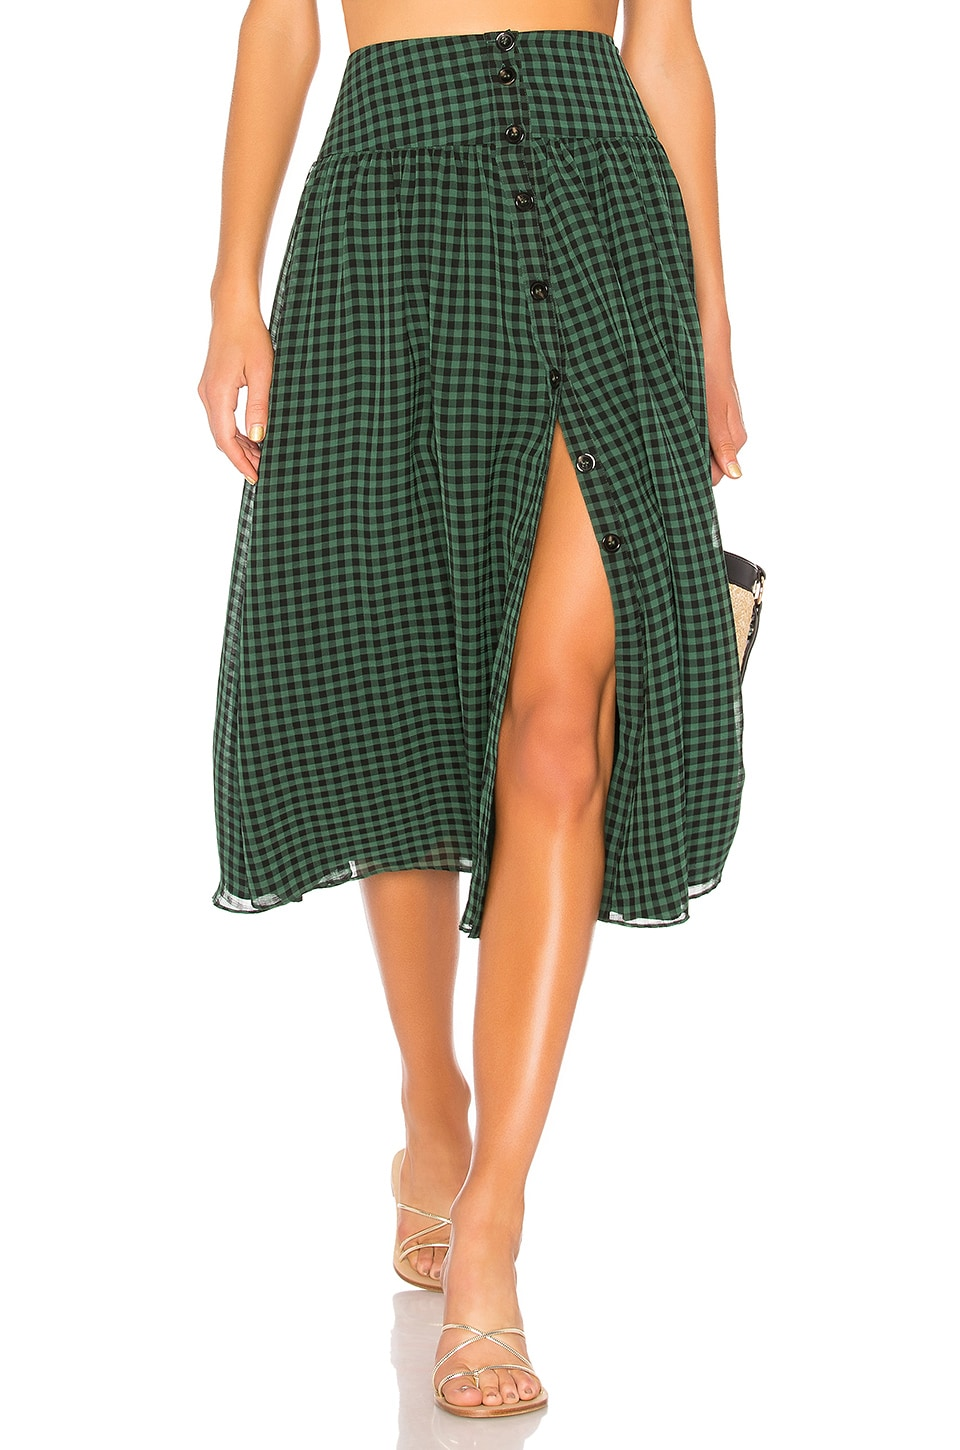 House of Harlow 1960 x REVOLVE Jani Skirt in Forest Green